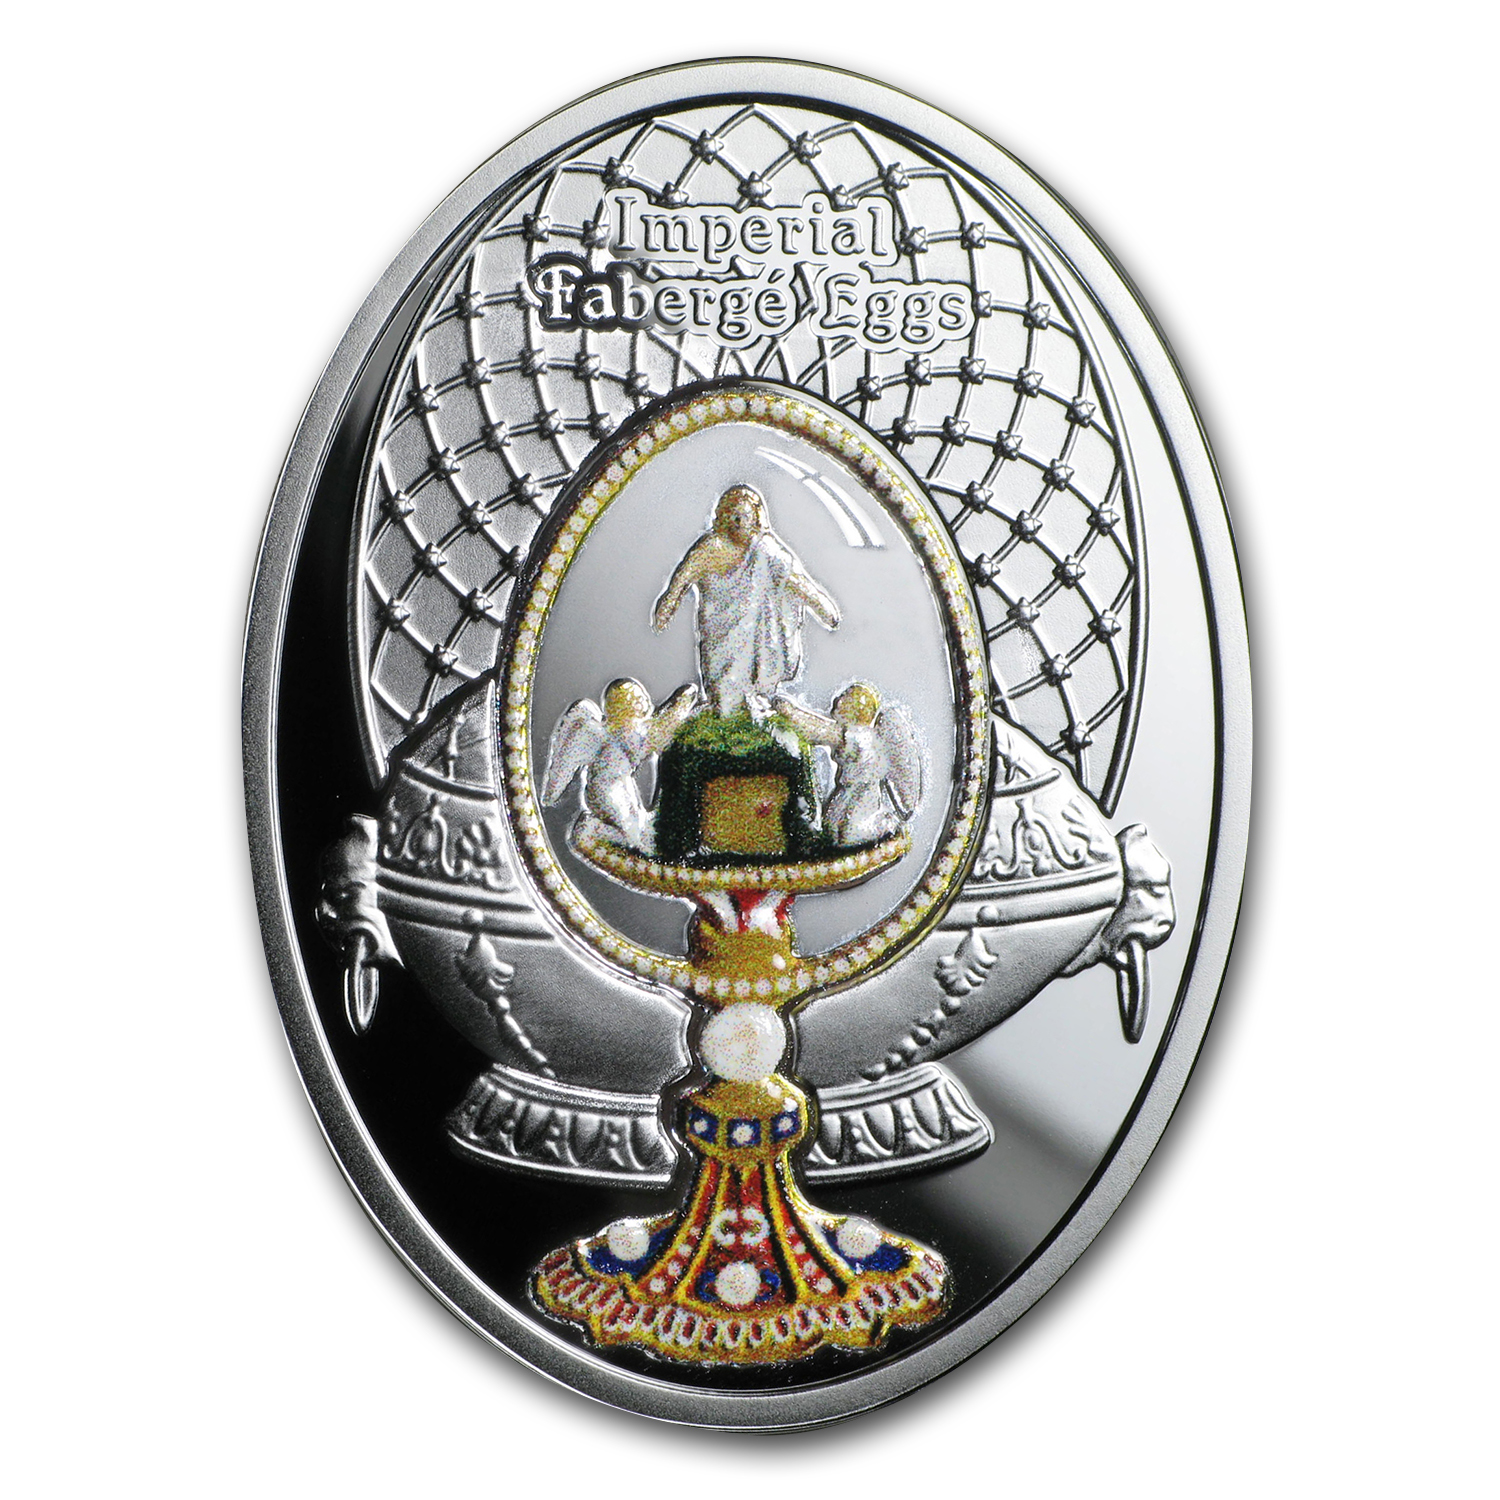 2017 Niue Silver Faberge Eggs III Edition (Resurrection Egg)